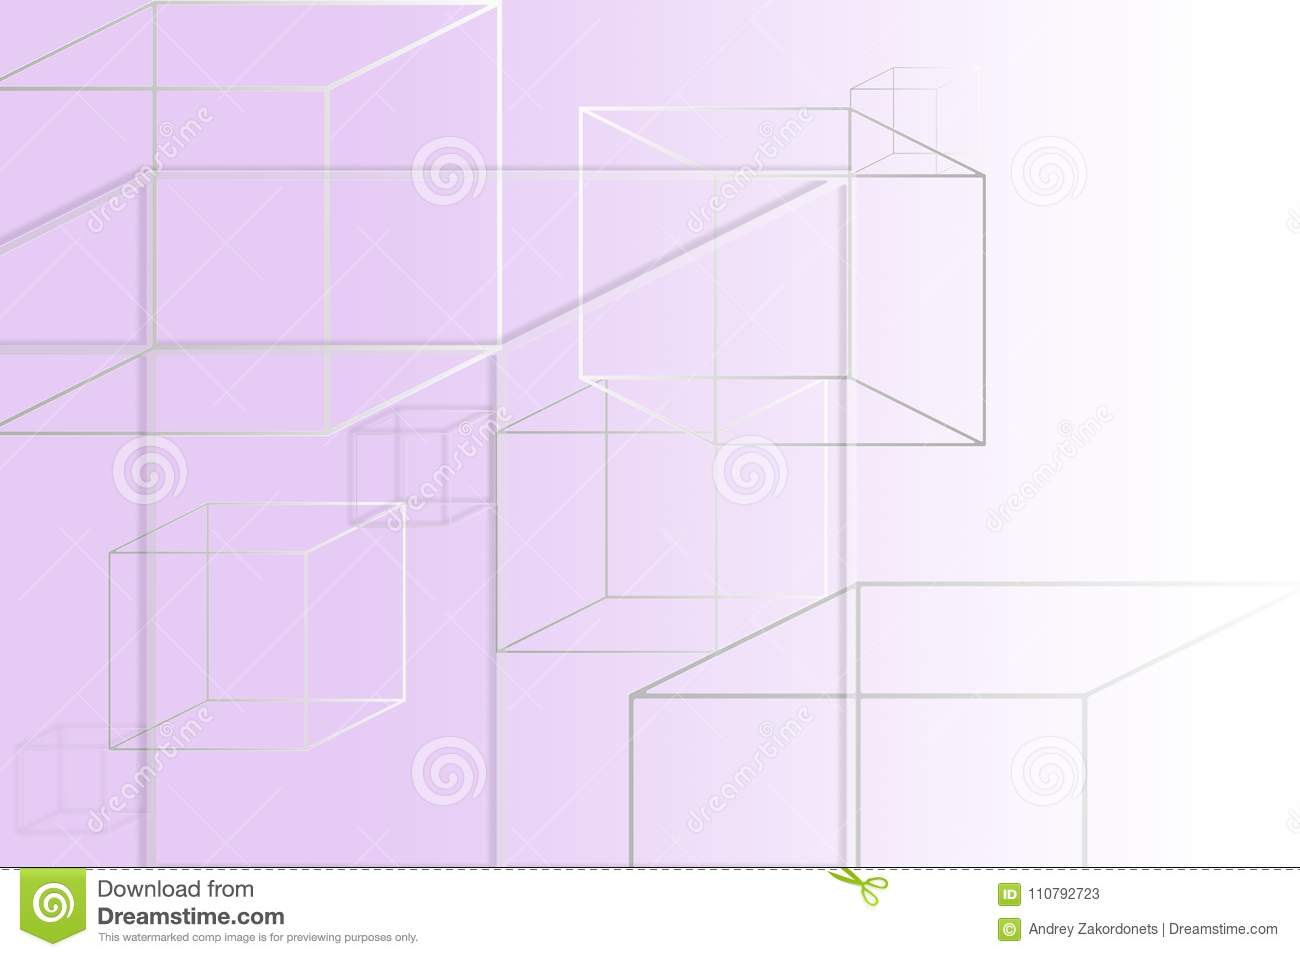 Multi-colored square figures on a purple background with a place under the text